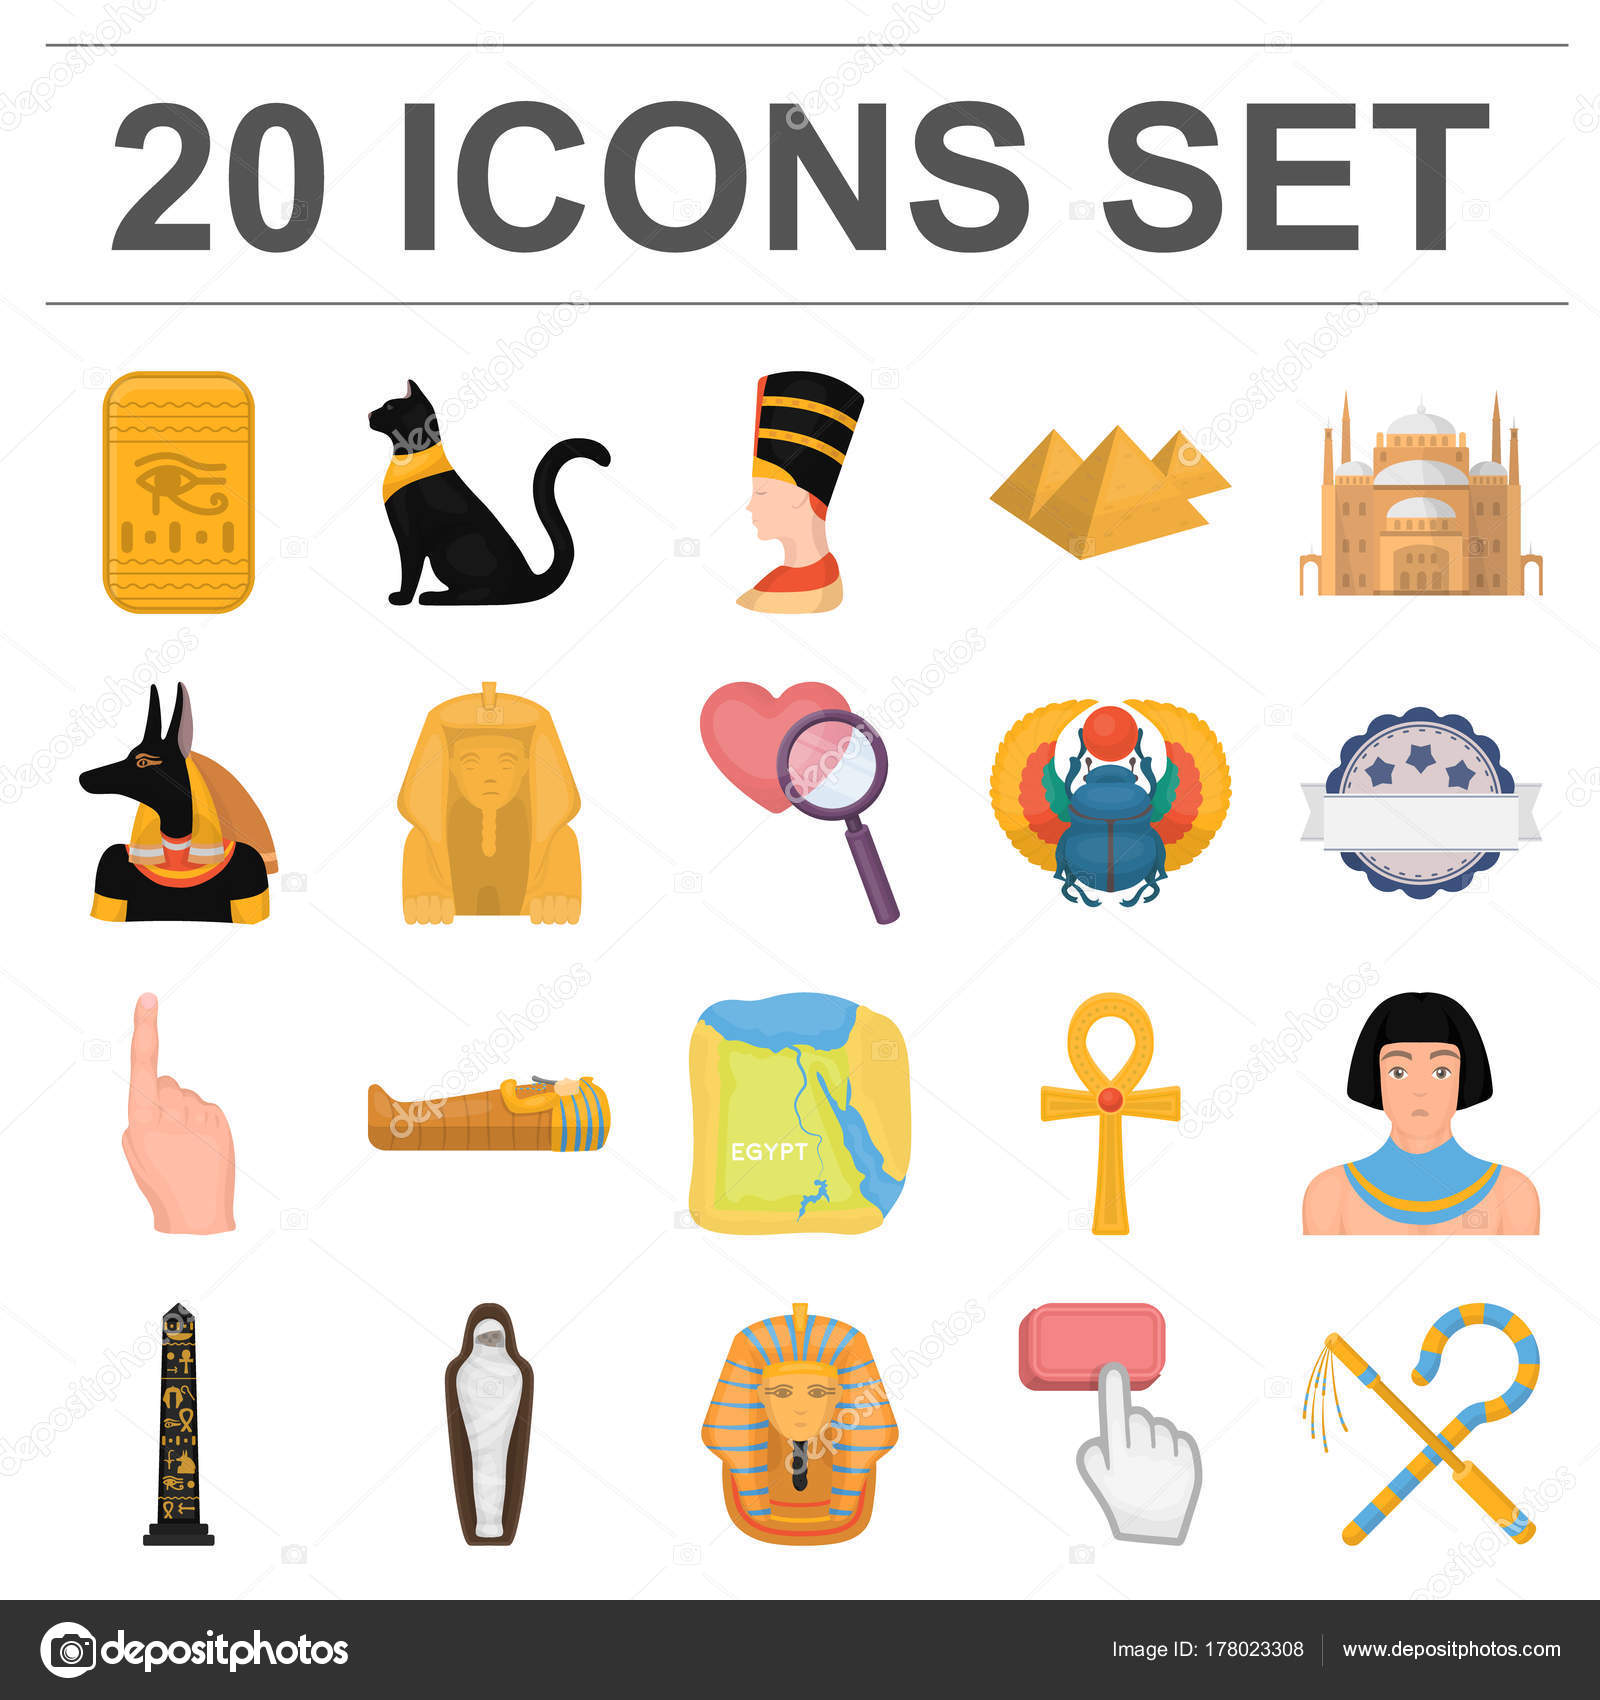 chat Vector Icons free download in SVG, PNG Format